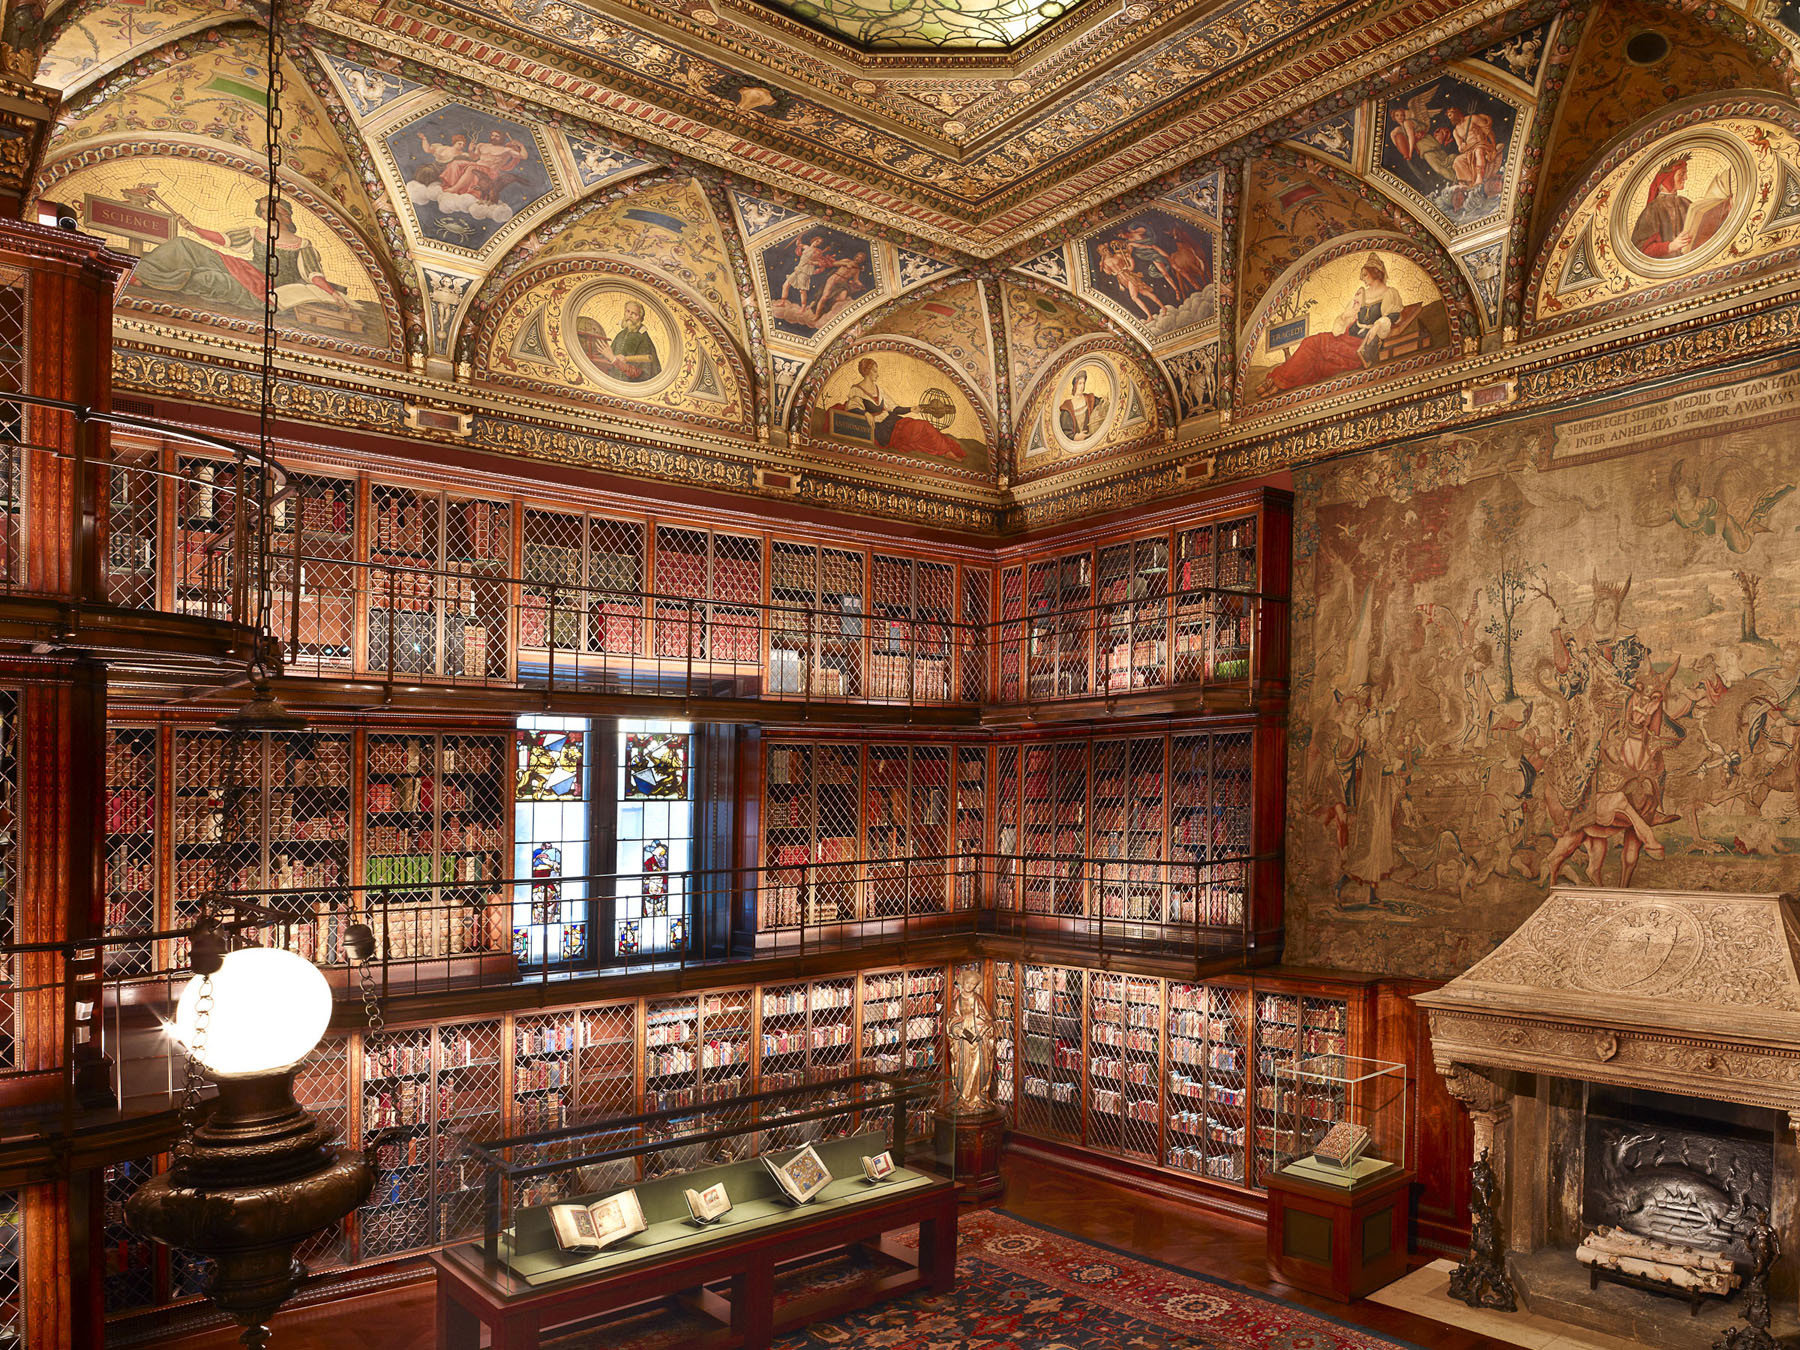 books bookshelf Budget museum stained glass tapestry indoor building ancient history interior design library several